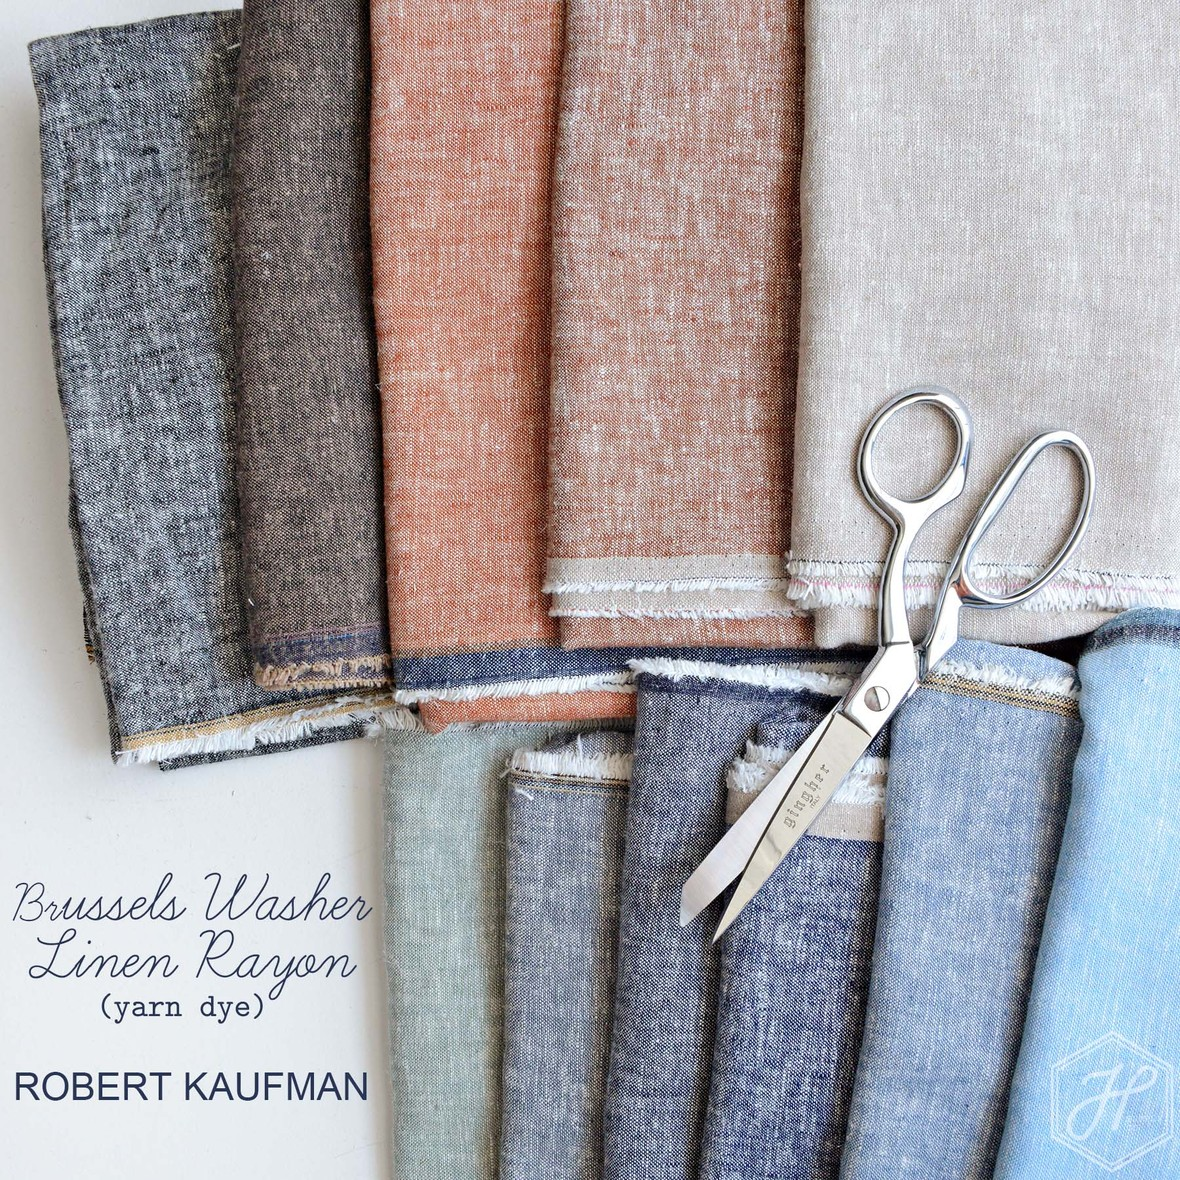 New Brussels Washer Yarn Dye from Robert Kaufman at Hawthorne Supply Co